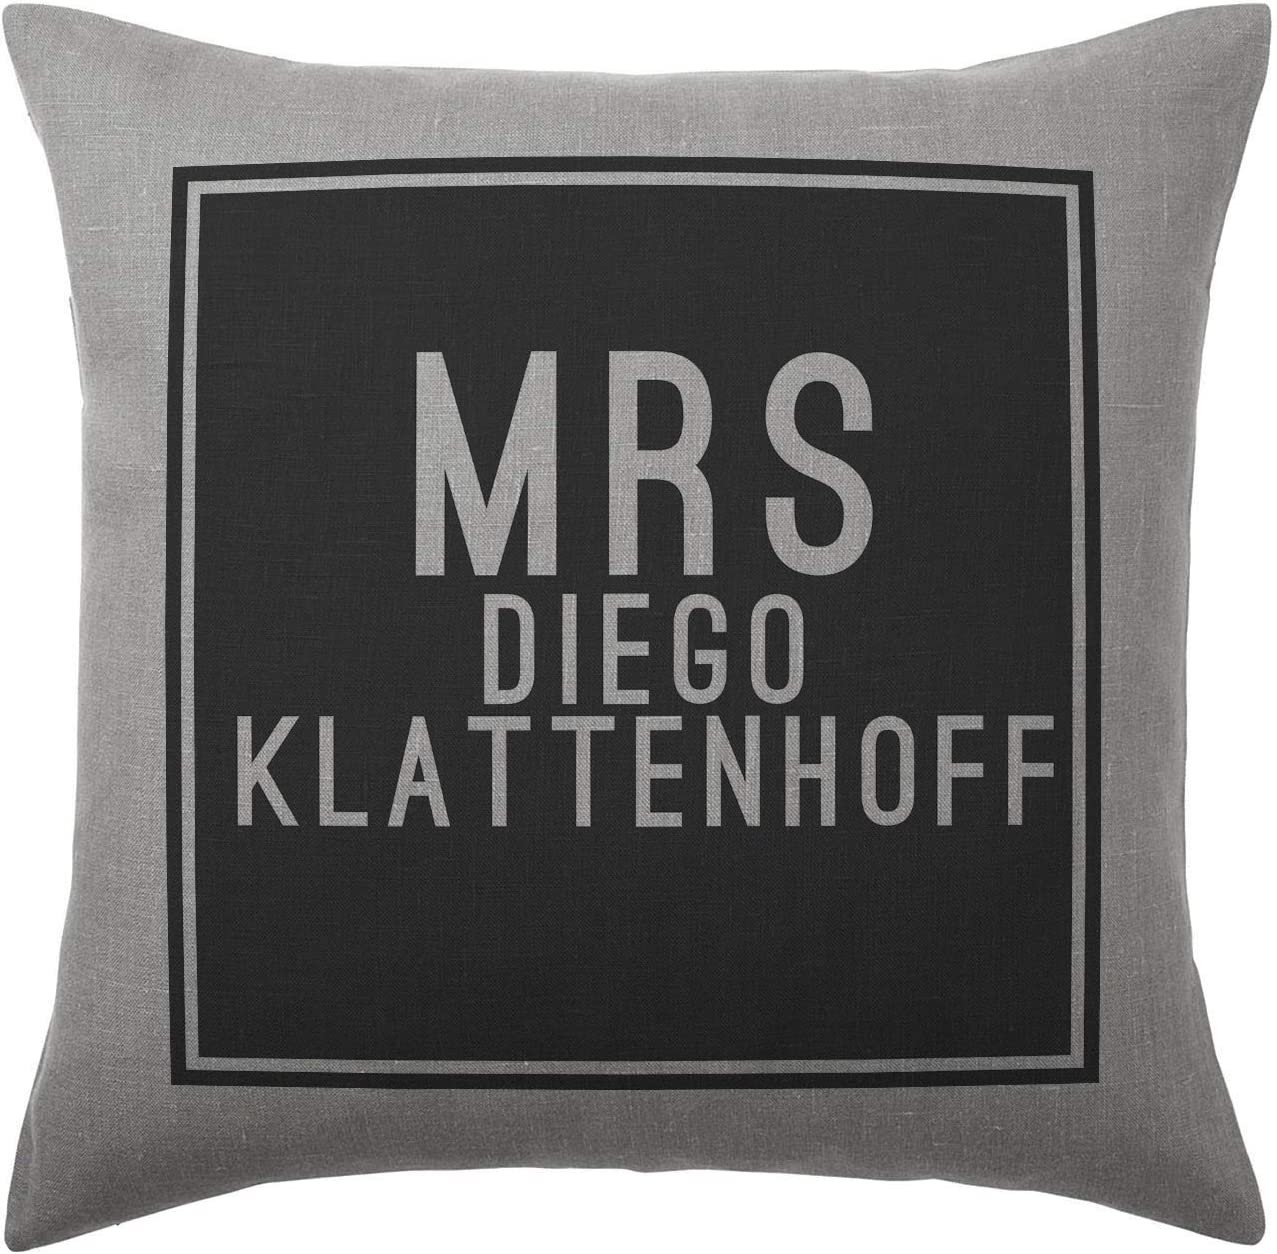 Stocking Fillers Diego Klattenhoff Cushion Pillow Grey 100/% Cotton Available with or without filling pad Cover and filling pad 40x40cm